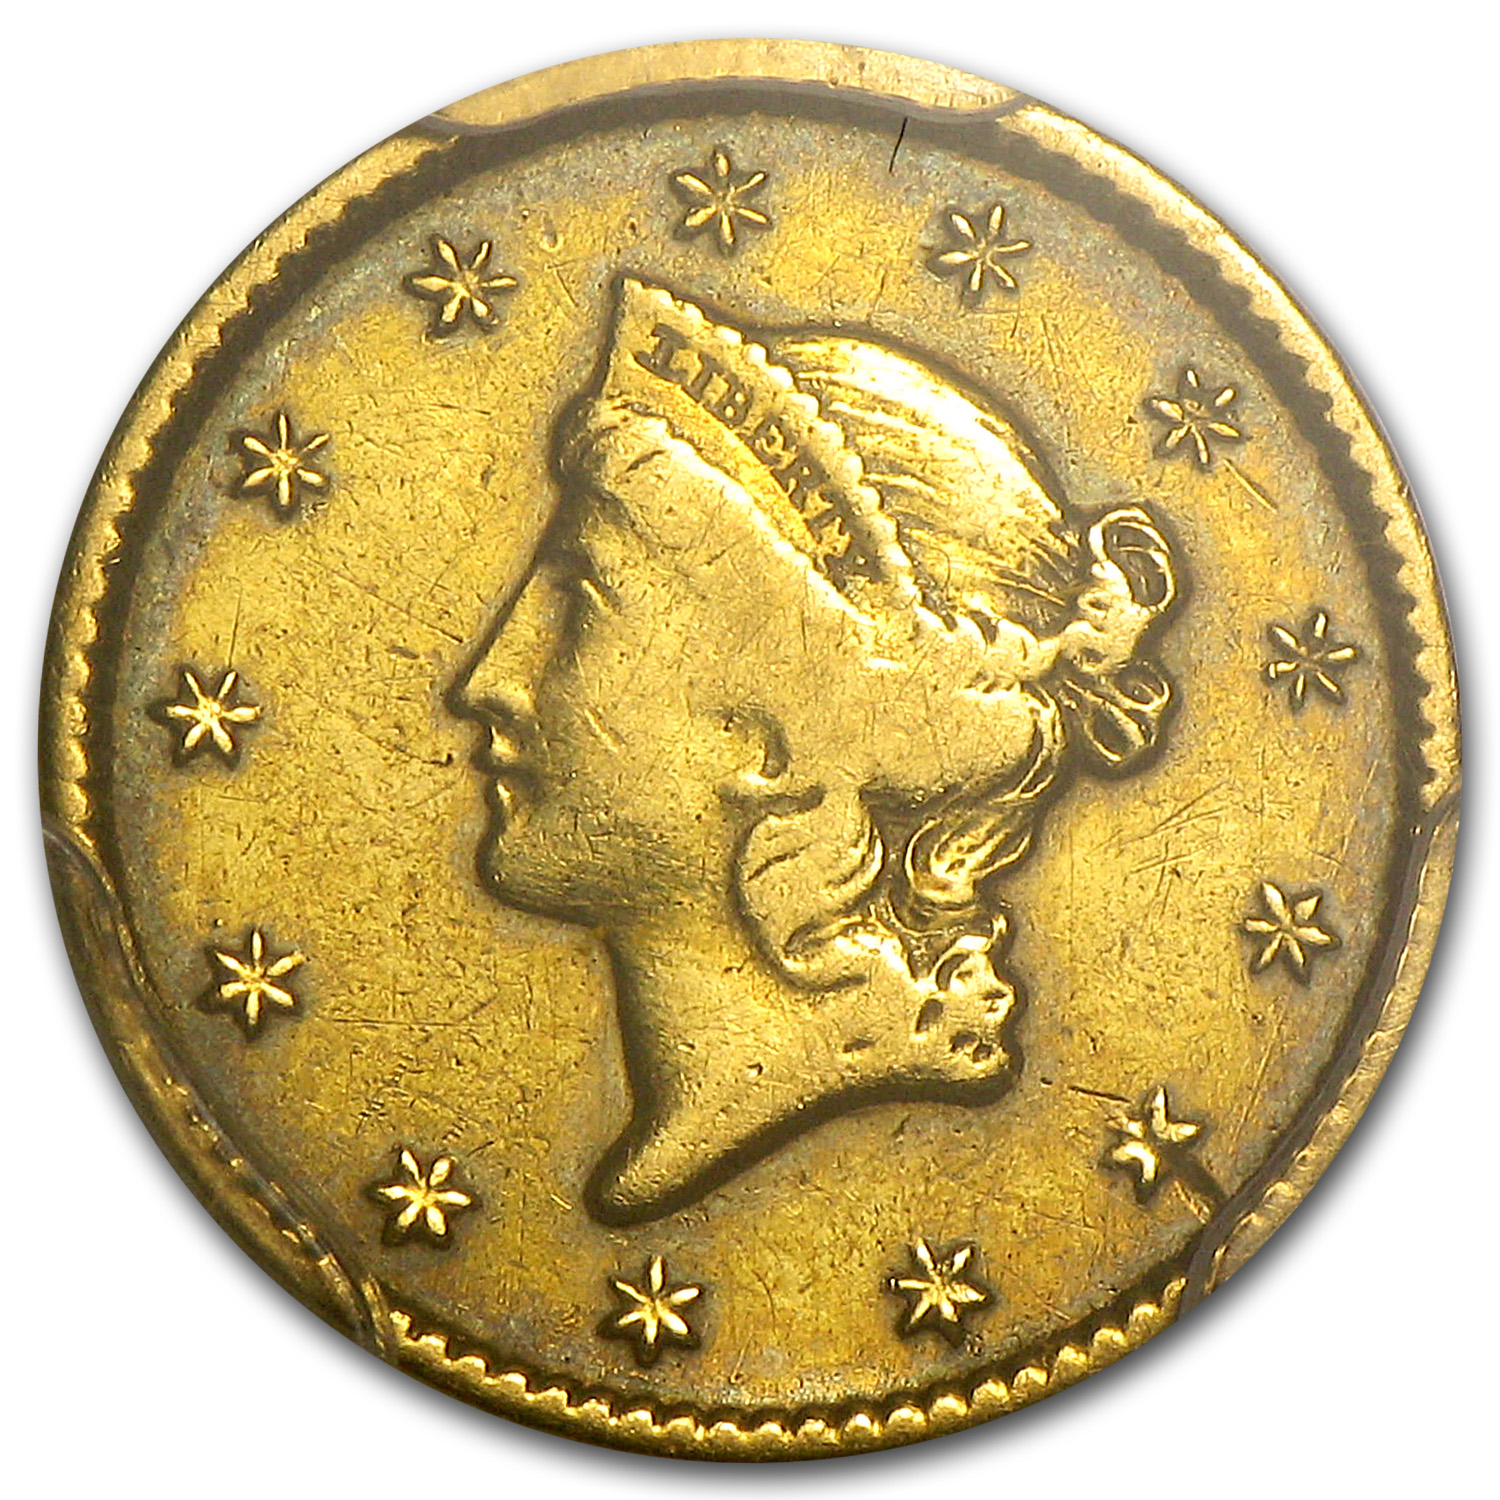 1849-C $1 Liberty Head Gold Closed Wreath Fine Details PCGS